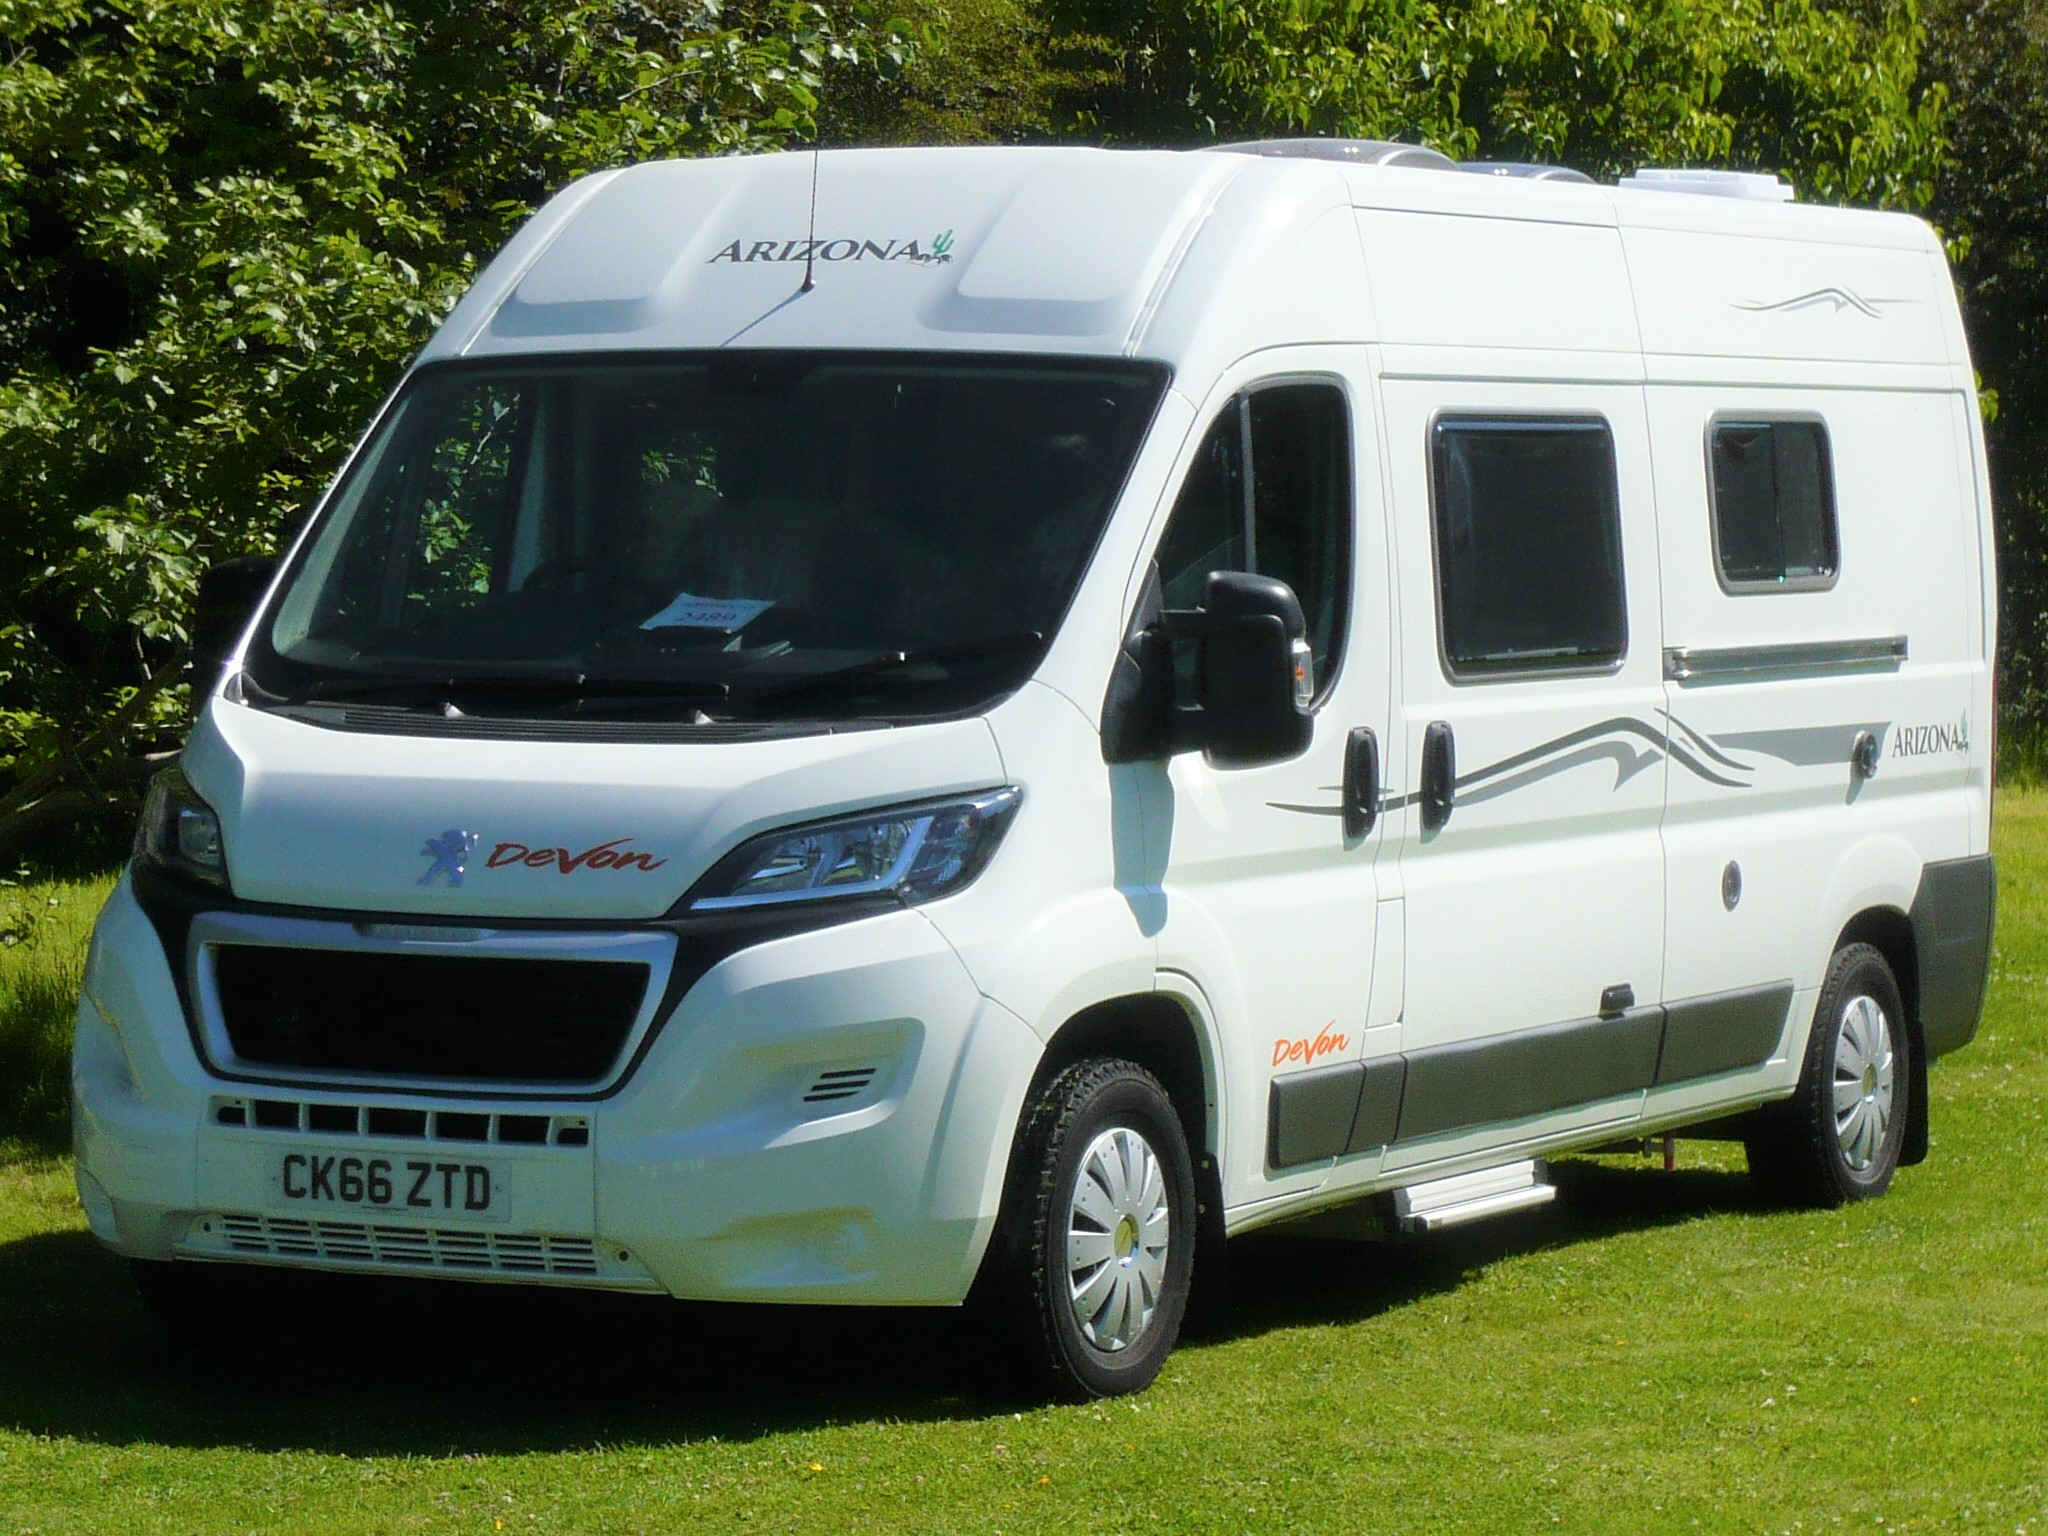 Devon Arizona Twin - 2 berth 4 belted seats